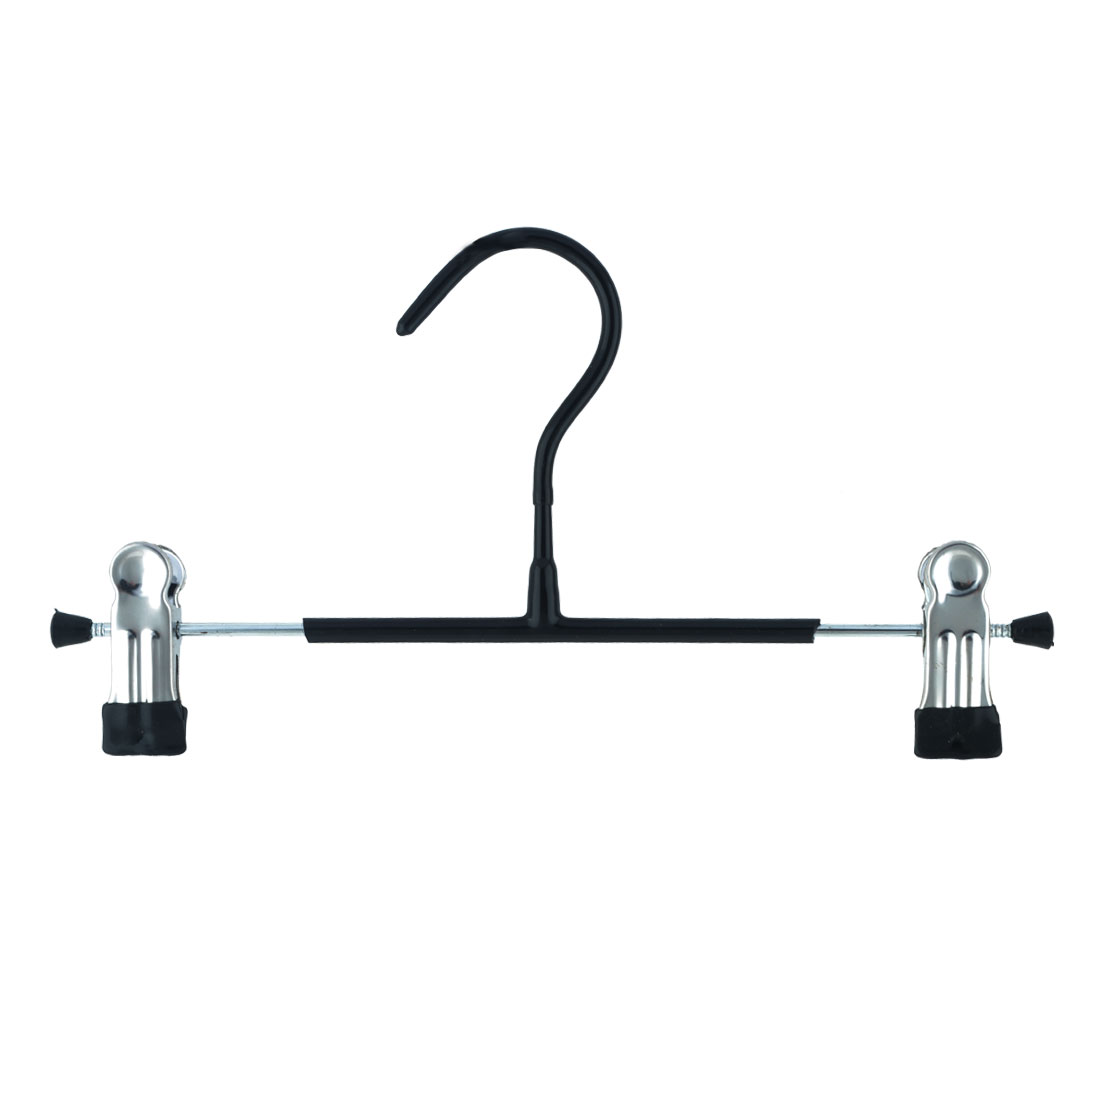 Household Toggery Plastic Double Clips Suits Pants Clothes Clothing Hanger Black